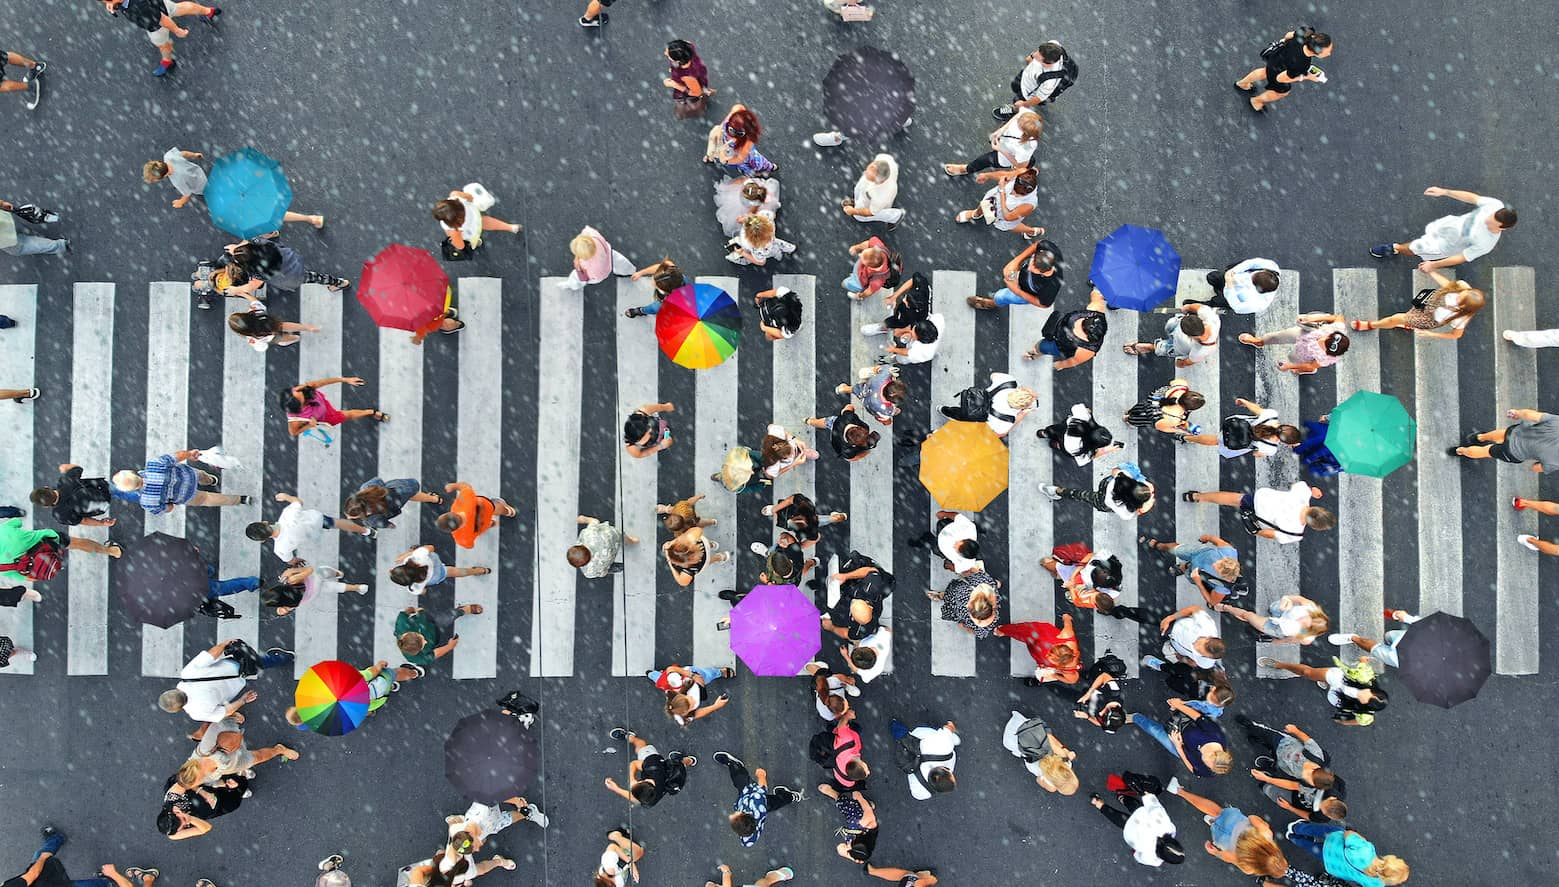 Rainy weather. People crowd with umbrellas moving through the pedestrian crosswalk. Top view from drone.